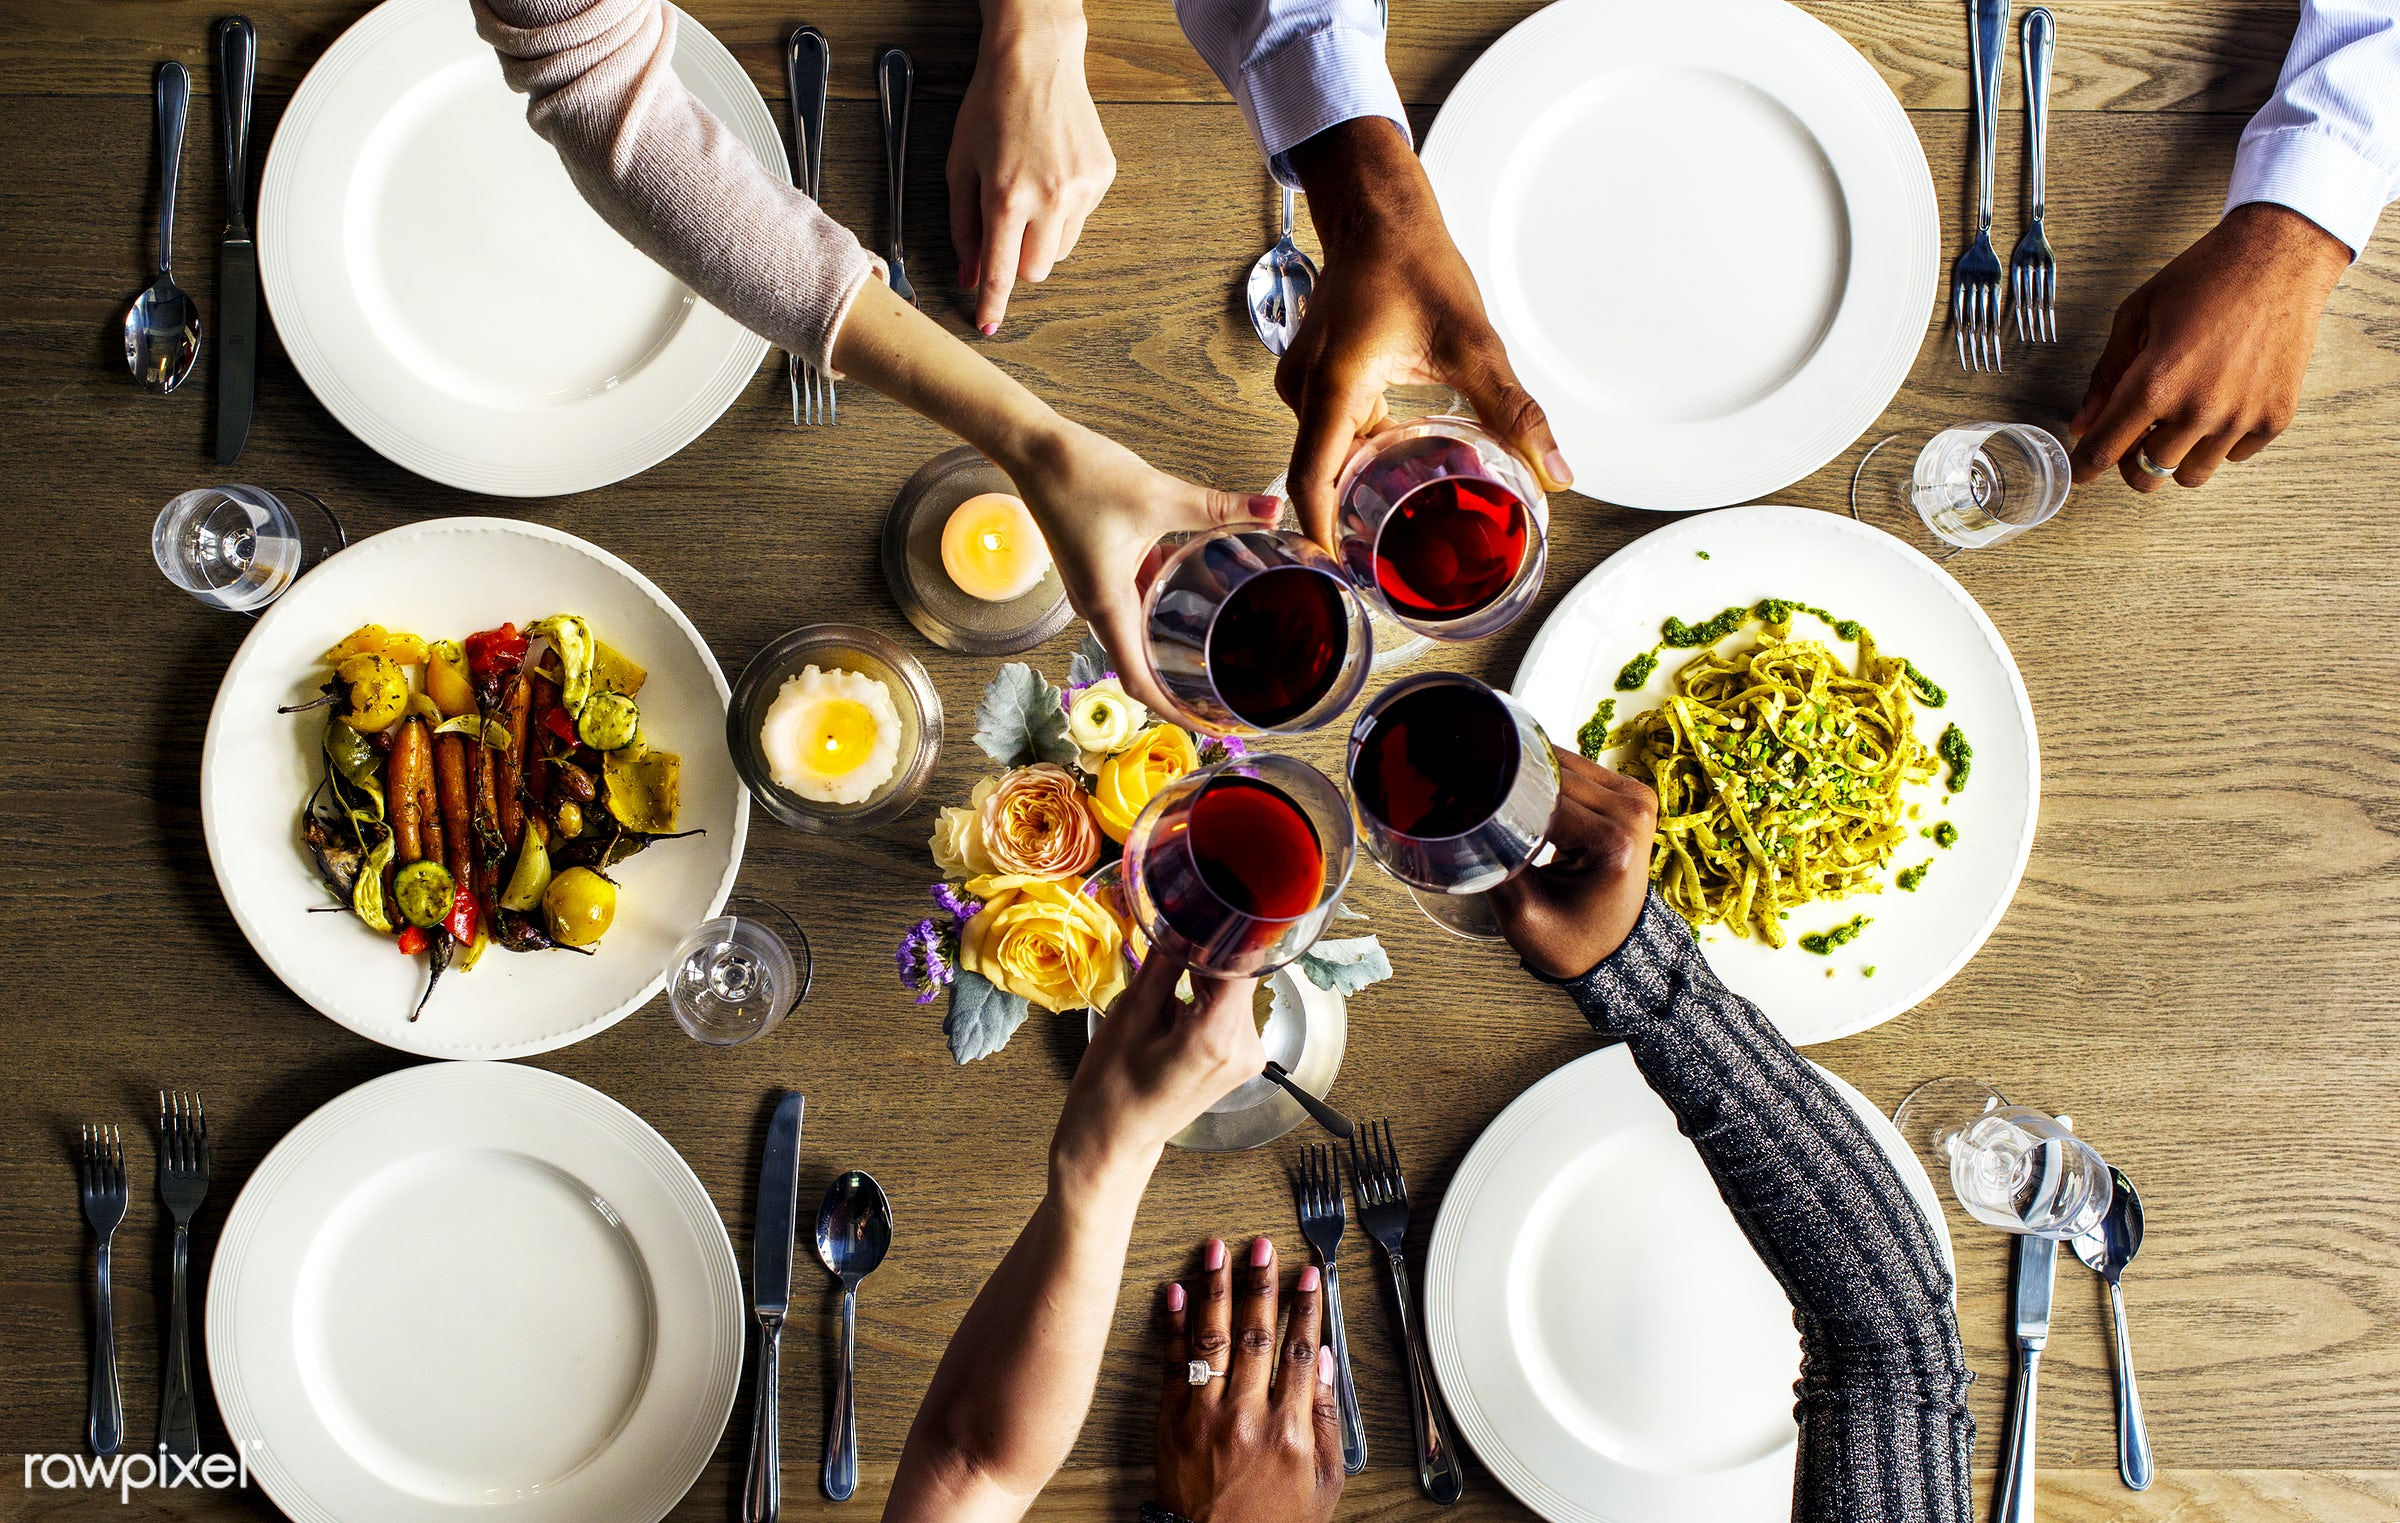 People Clinging Wine Glasses Together in Restaurant - restaurant, eat, adult, african descent, candles, caucasian, celebrate...